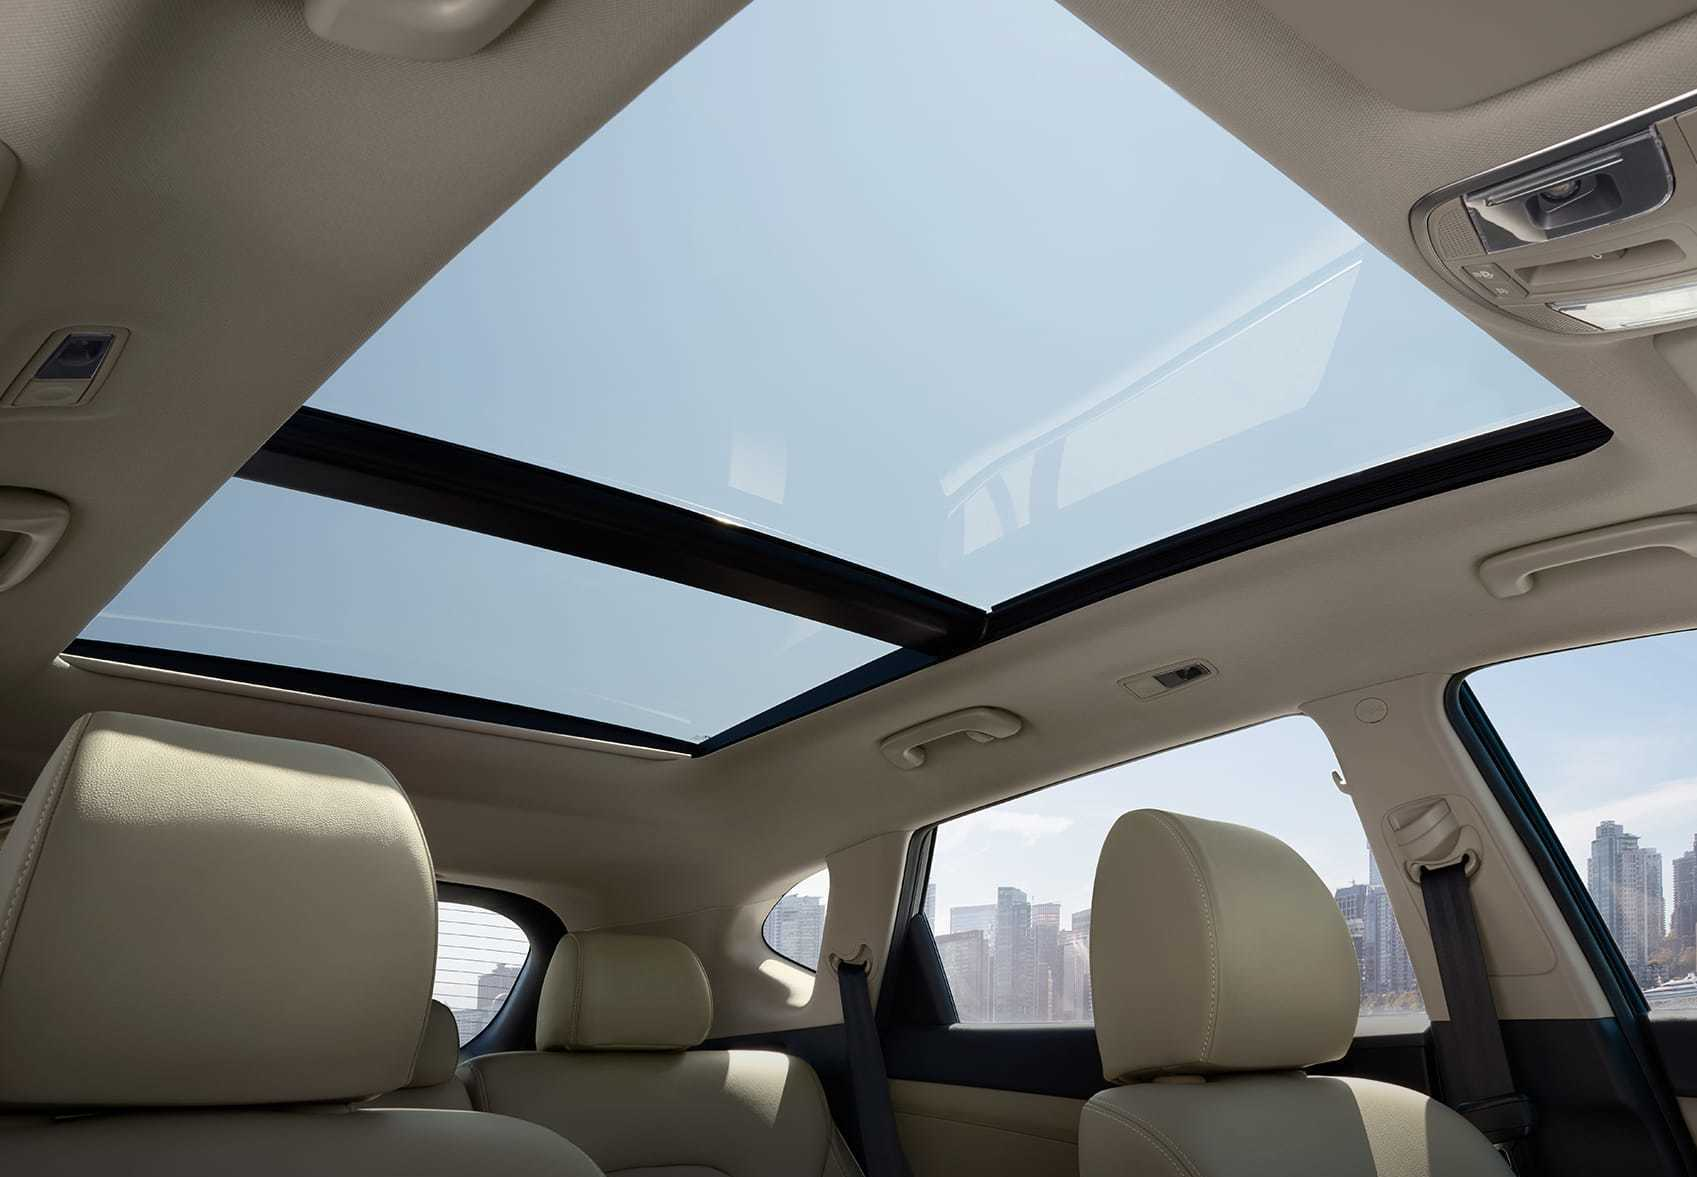 2020 Hyundai Tucson Panoramic Sunroof